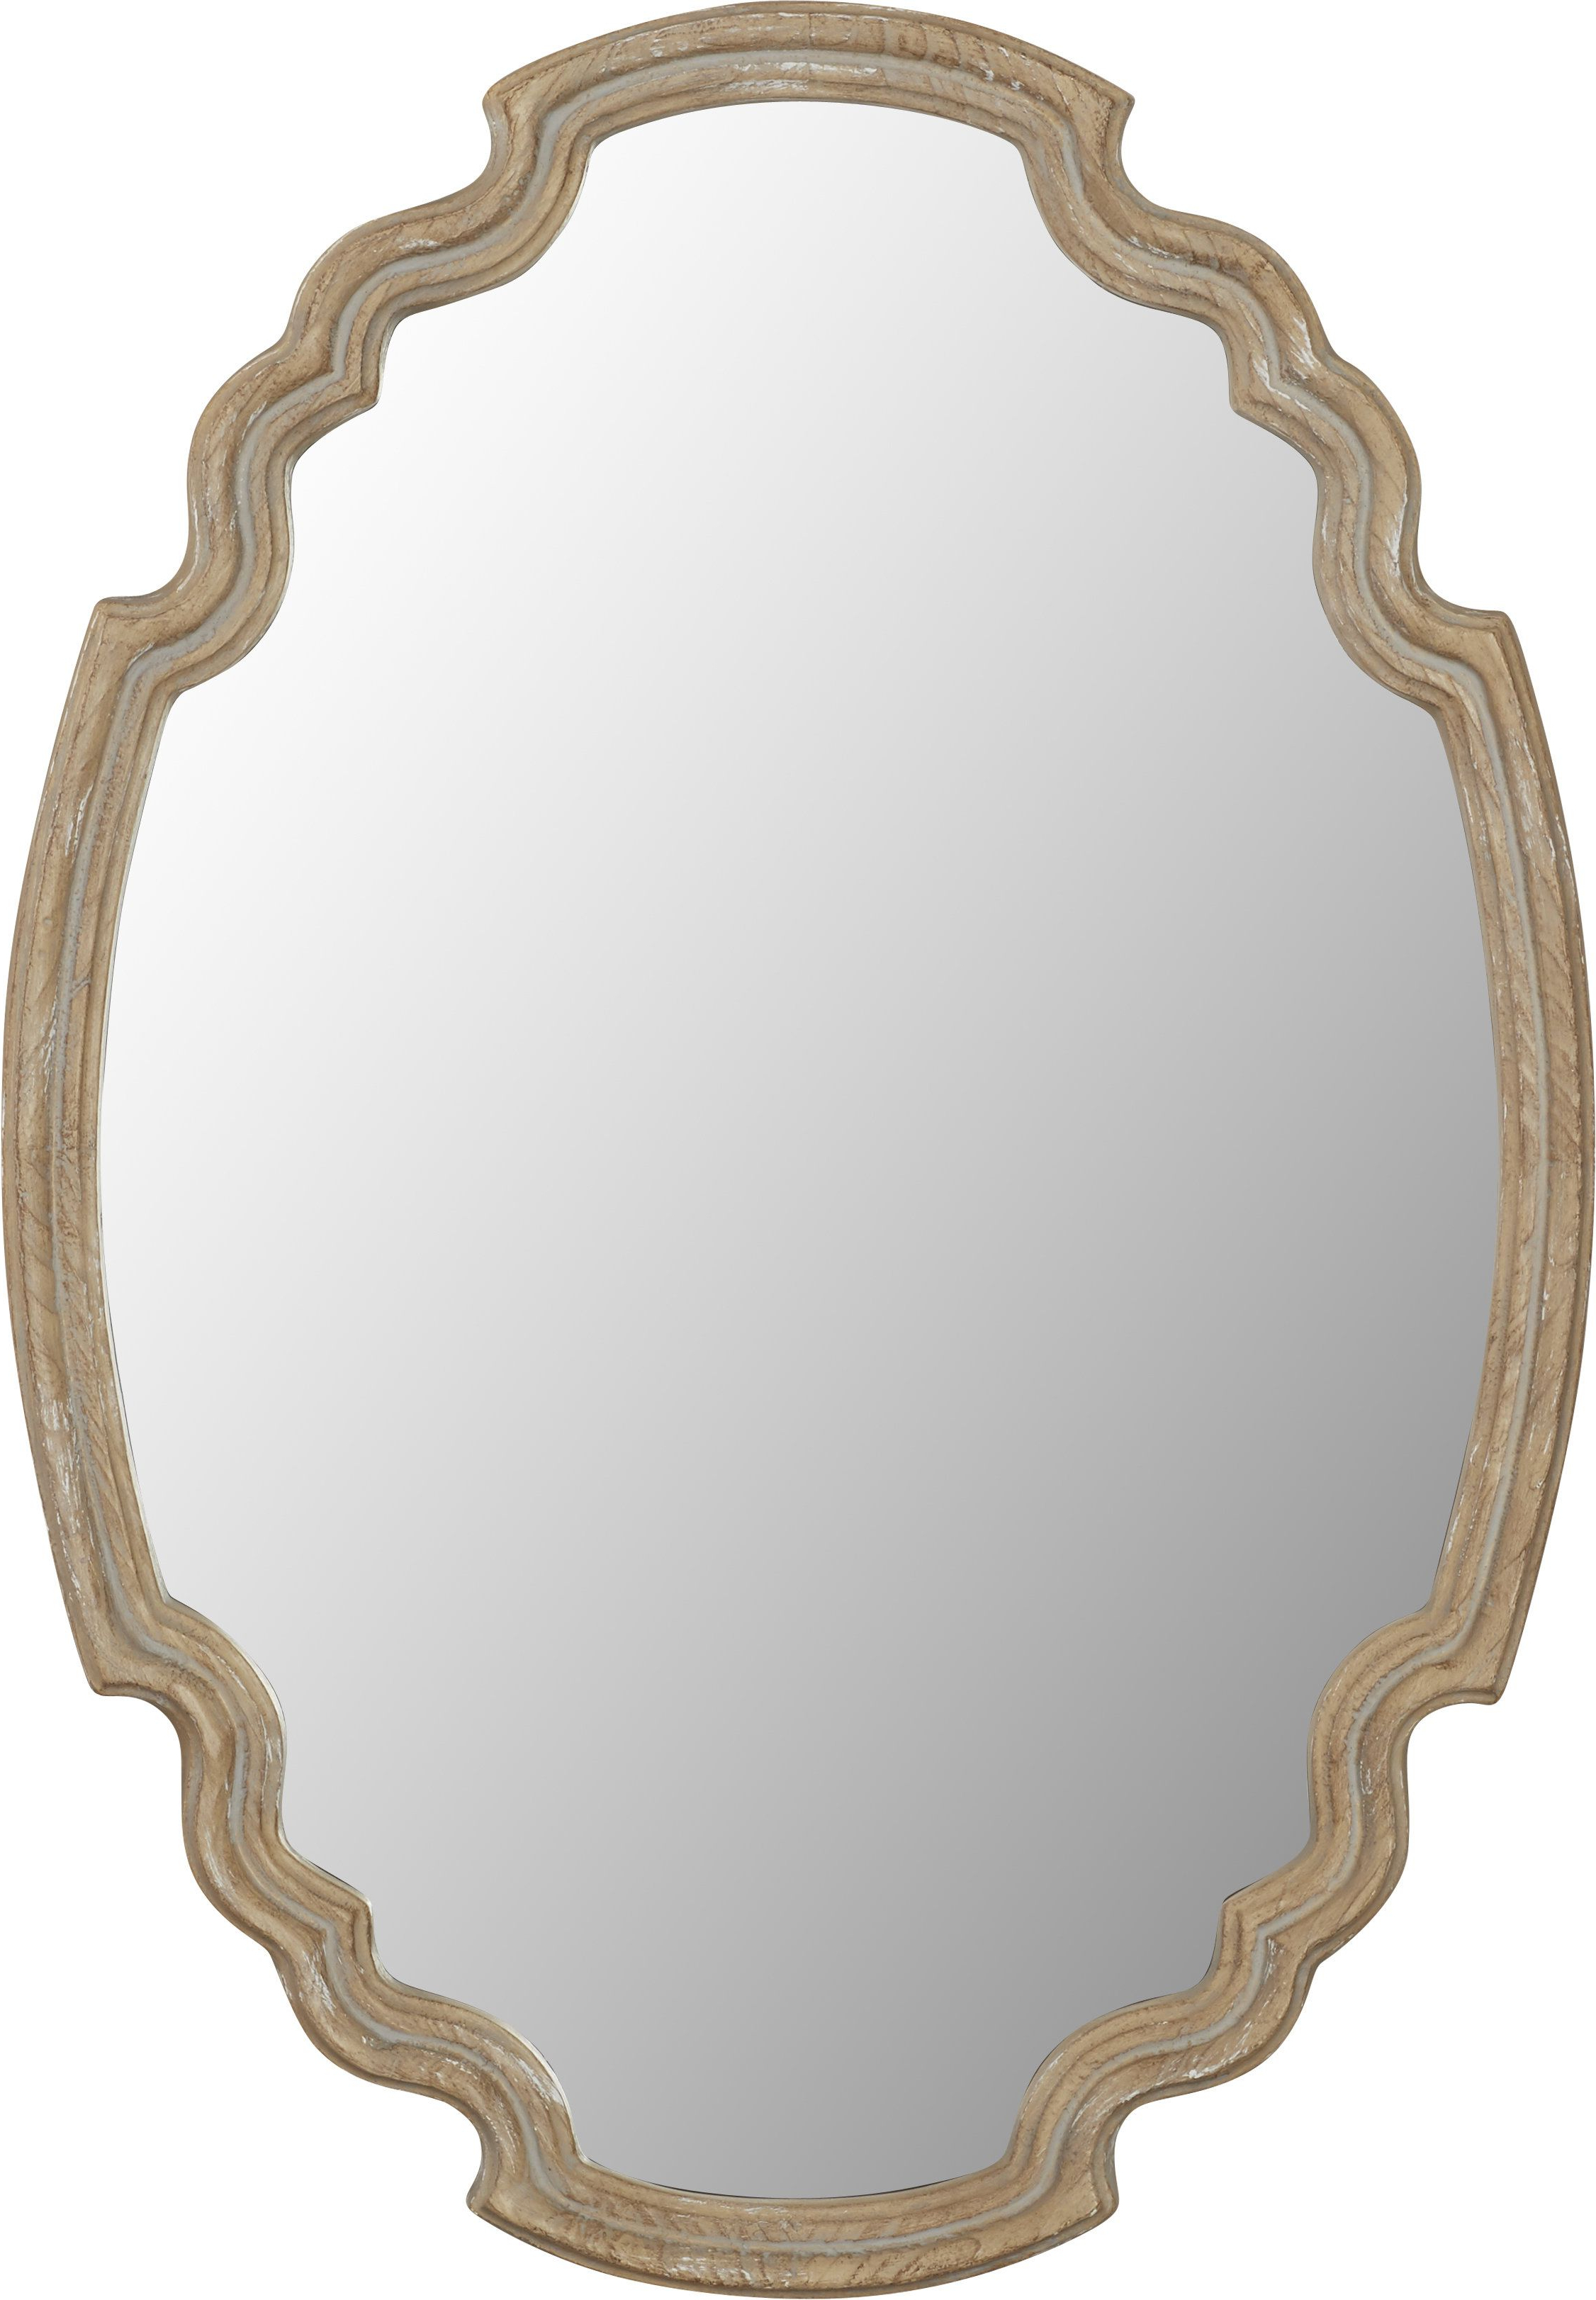 Best And Newest Wood Accent Mirror In (View 4 of 20)